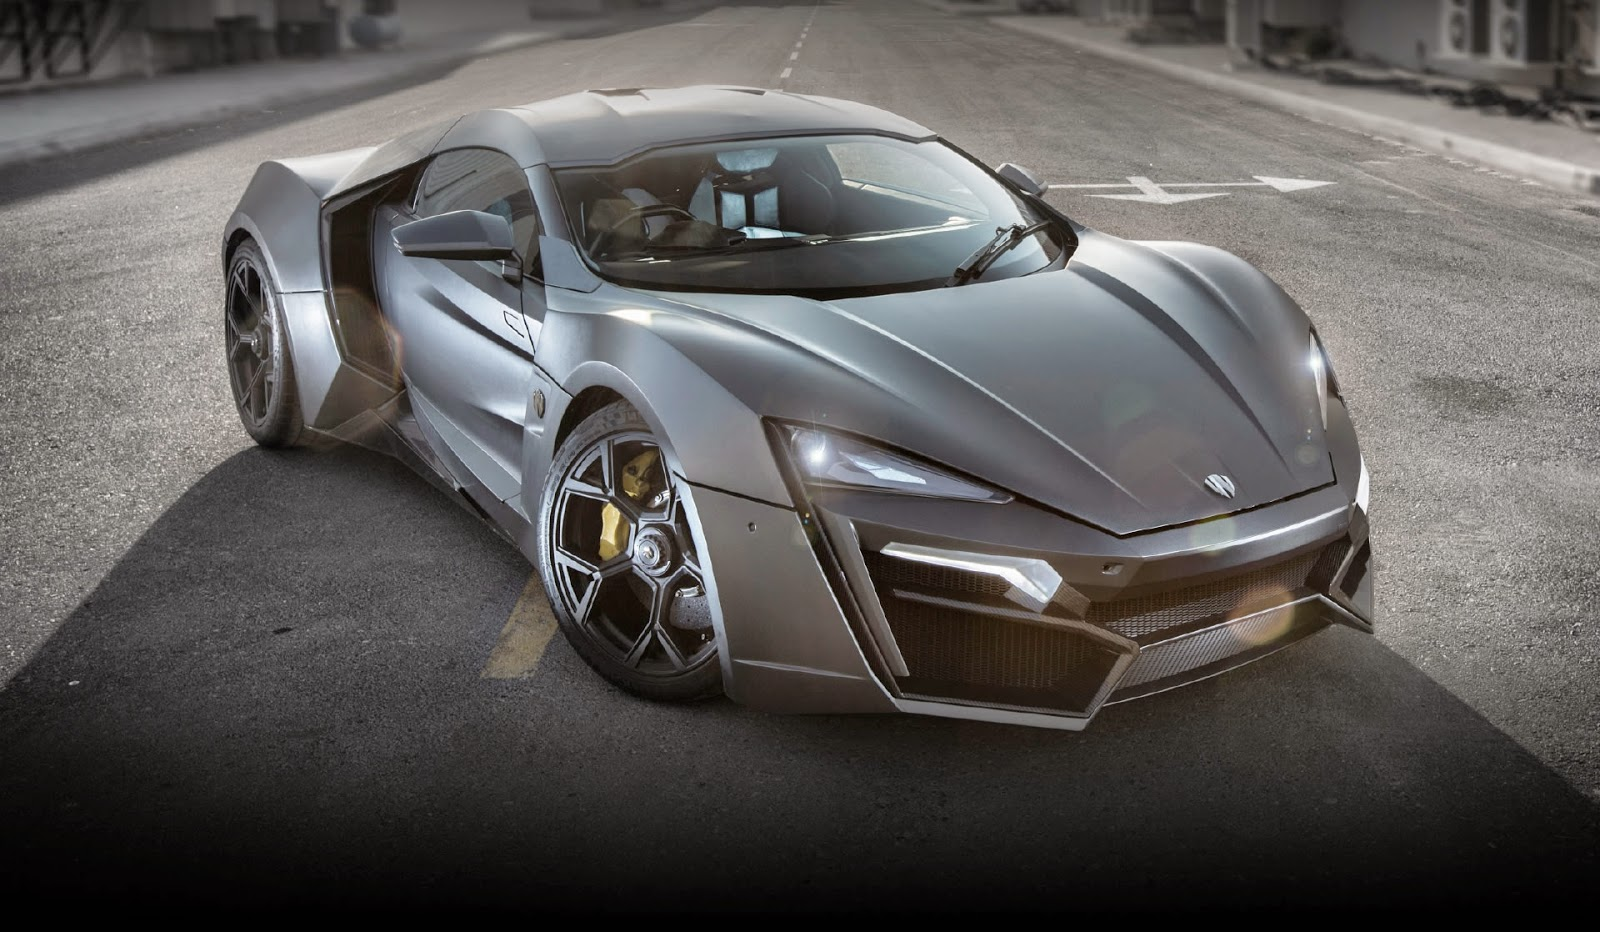 Meet The Supercar From Furious Thegentlemanracer Com